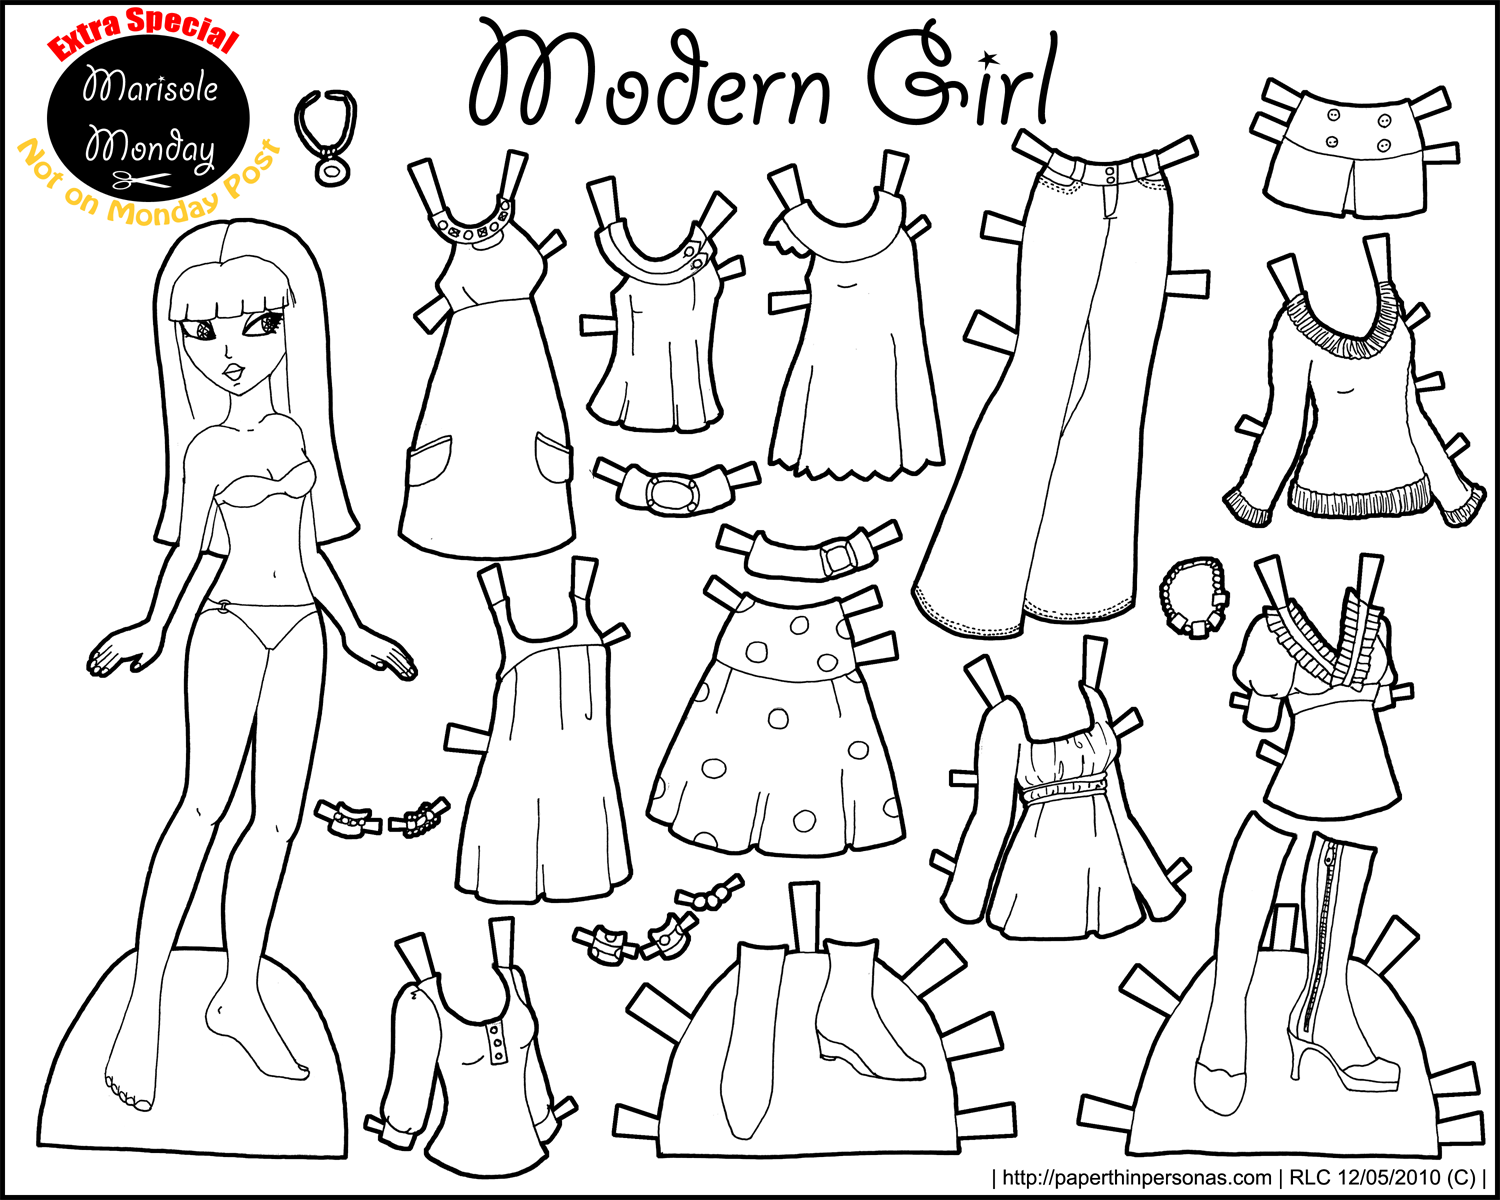 photograph regarding Paper Dolls to Printable identified as Marisole Monday: Innovative Lady Inside of Black White Coloring